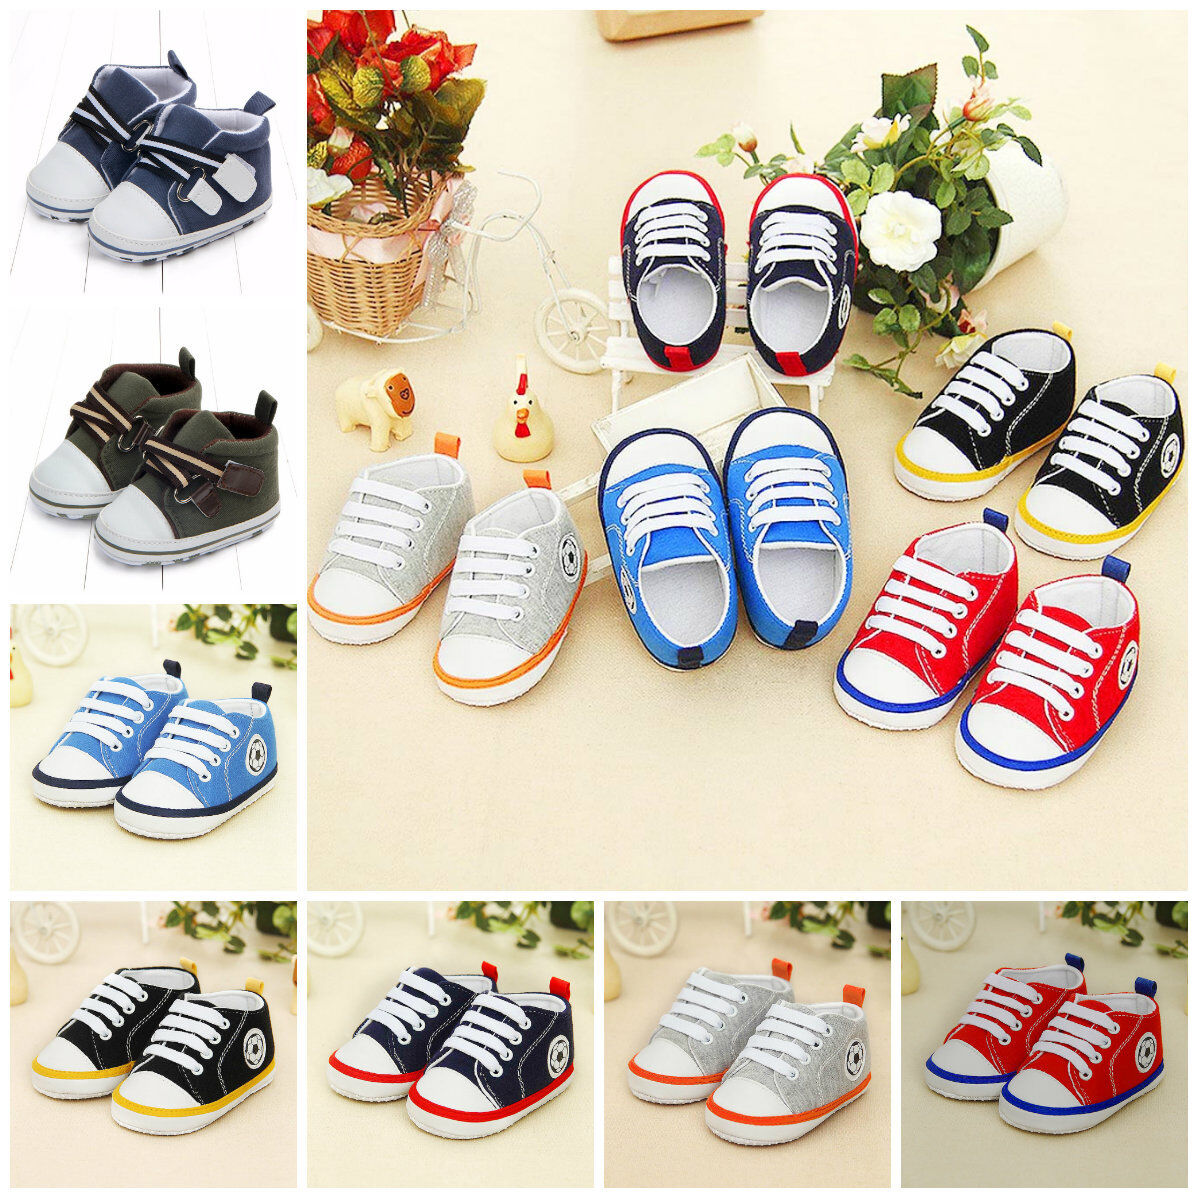 0-1 Year Baby Toddlers Print Cotton Sneakers Casual Daily Laces Boy Girls Shoes